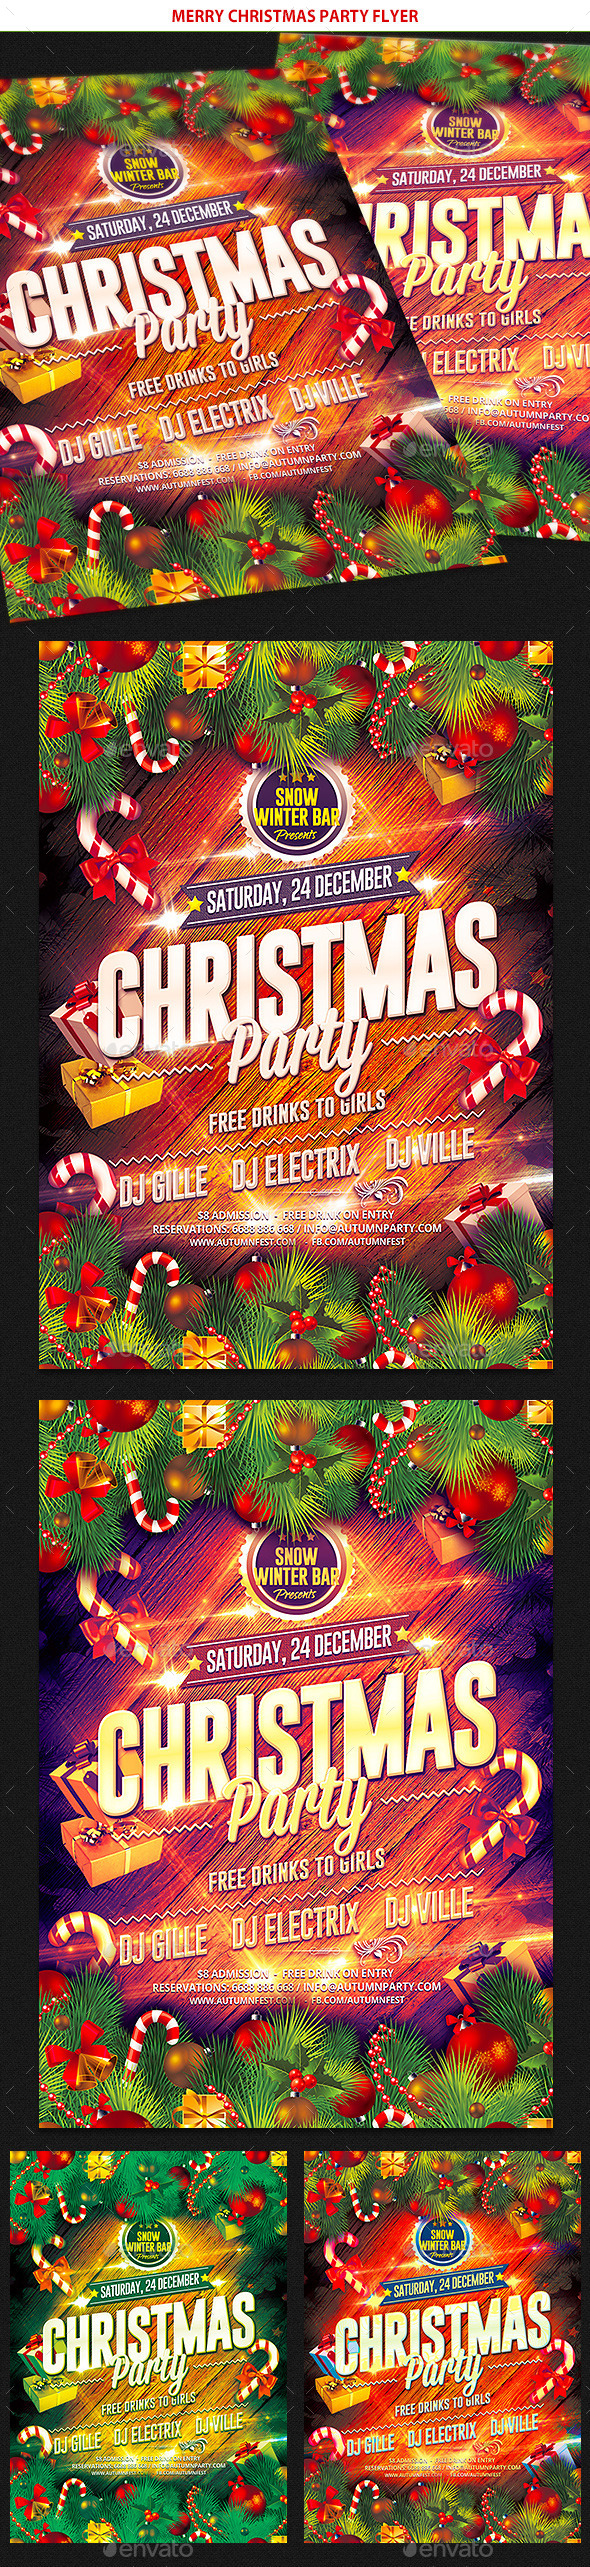 GraphicRiver Merry Christmas party Flyer 9514482